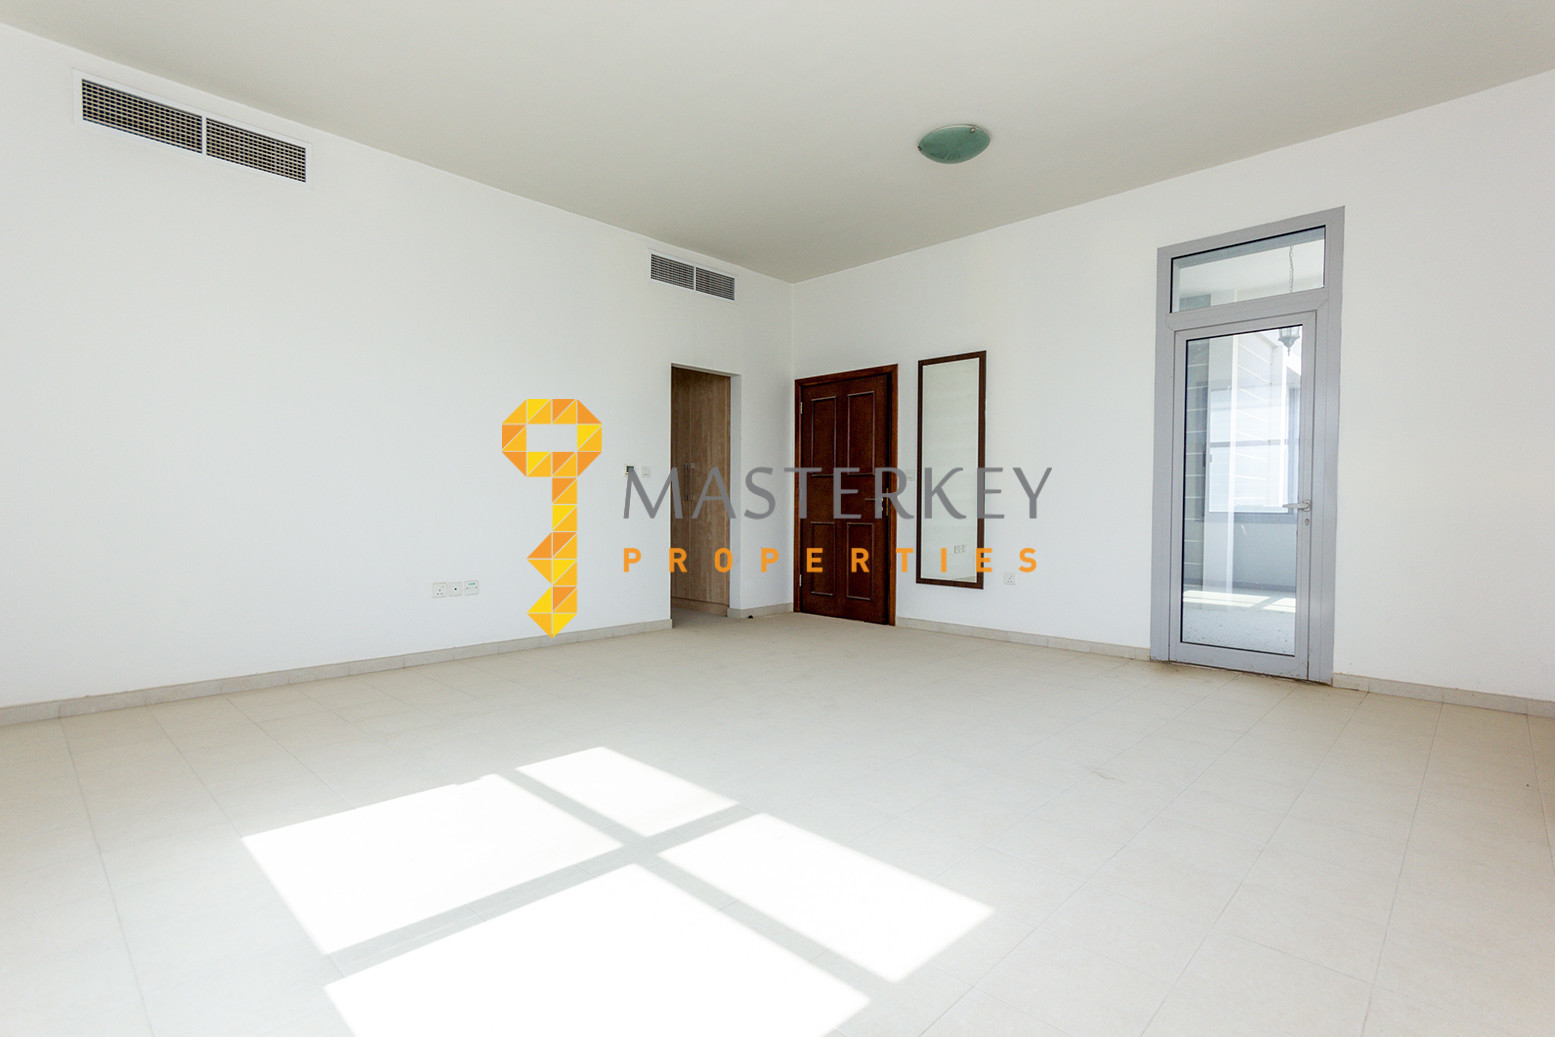 Villa for sale in Falcon City of Wonders 5br 8759sqft